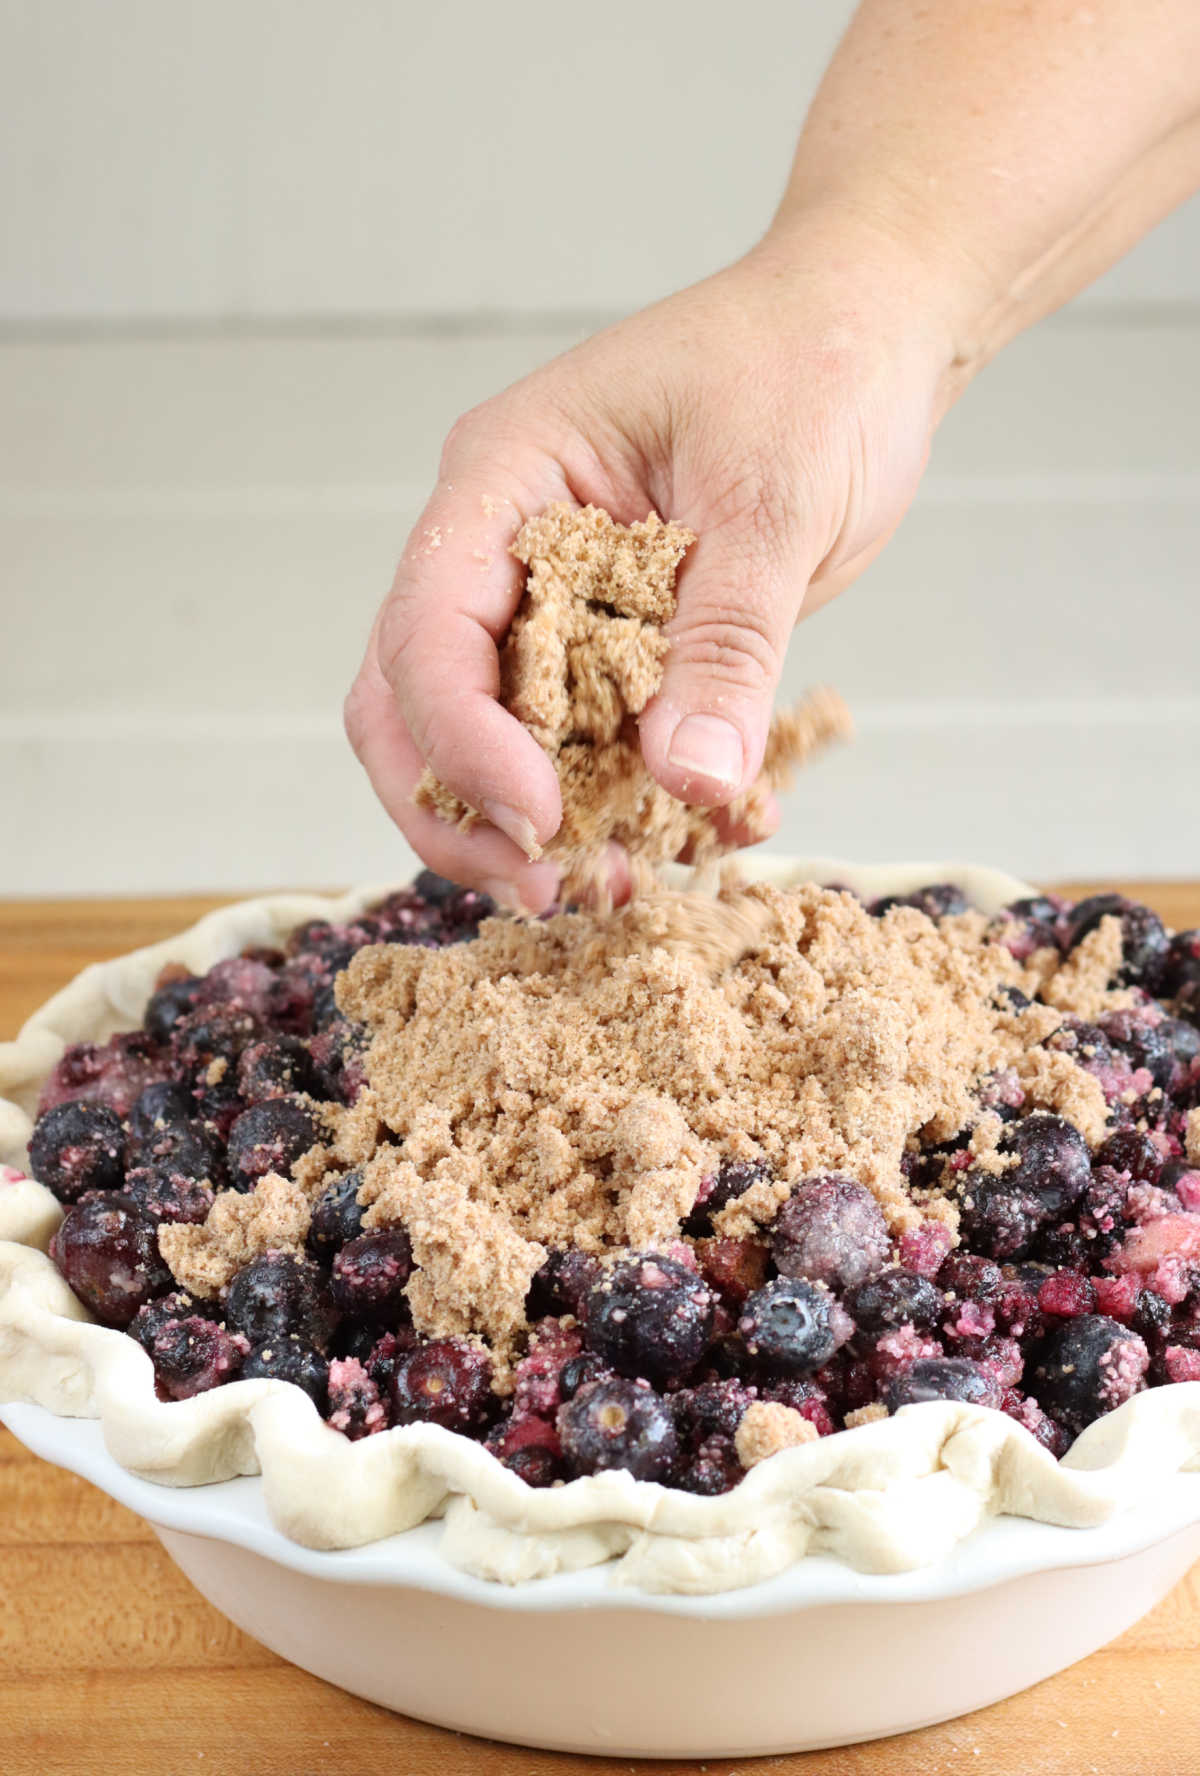 Hand pouring crumb topping on blueberry pie in white pie dish on butcher block.